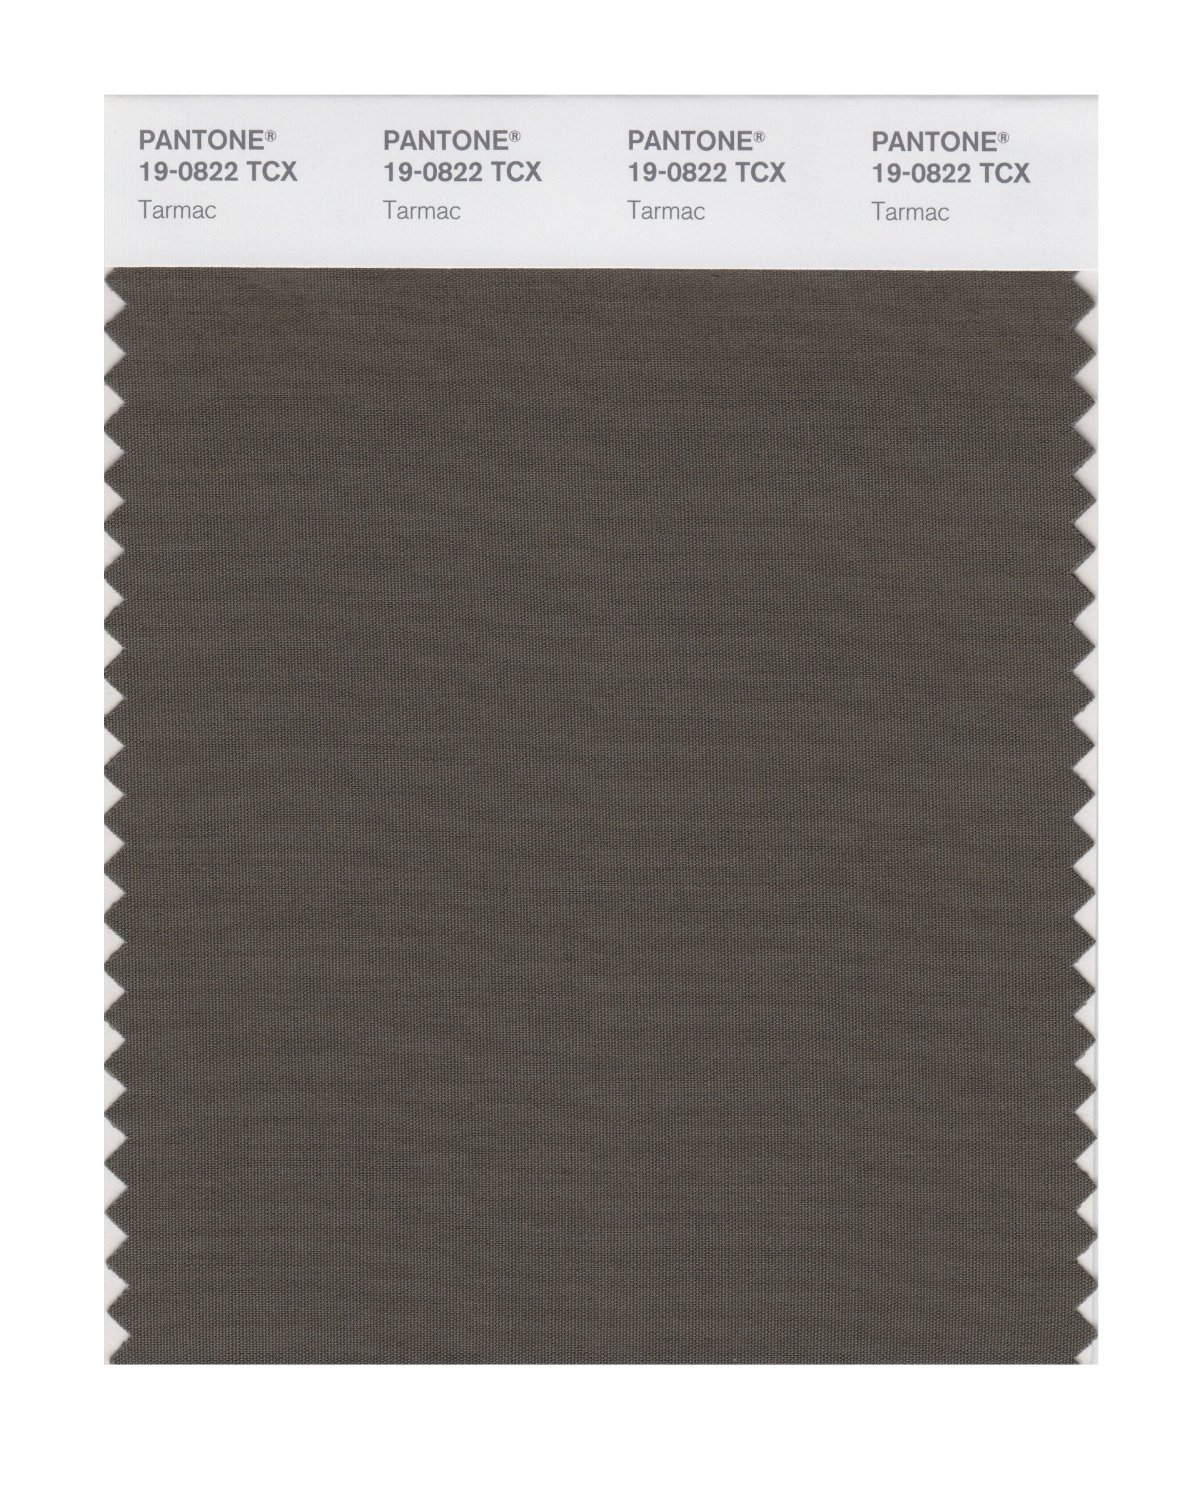 Pantone Smart Swatch 19-0822 Tarmac